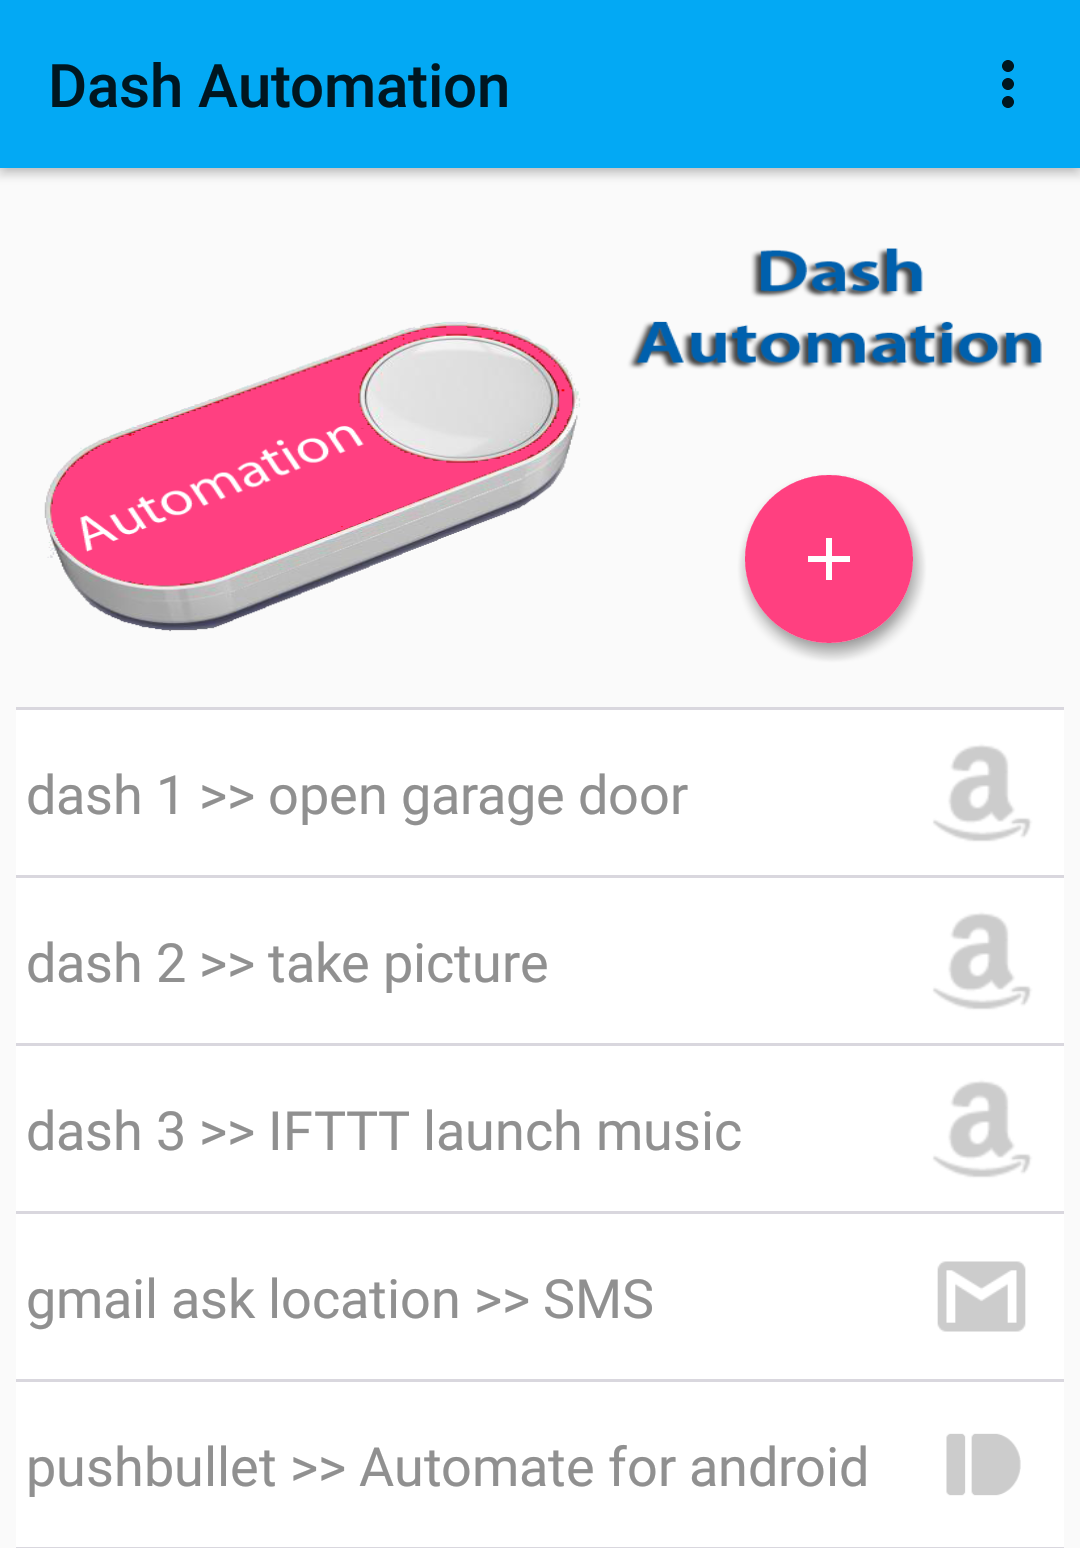 Share My Creation - JG Dash Automation | B4X Community